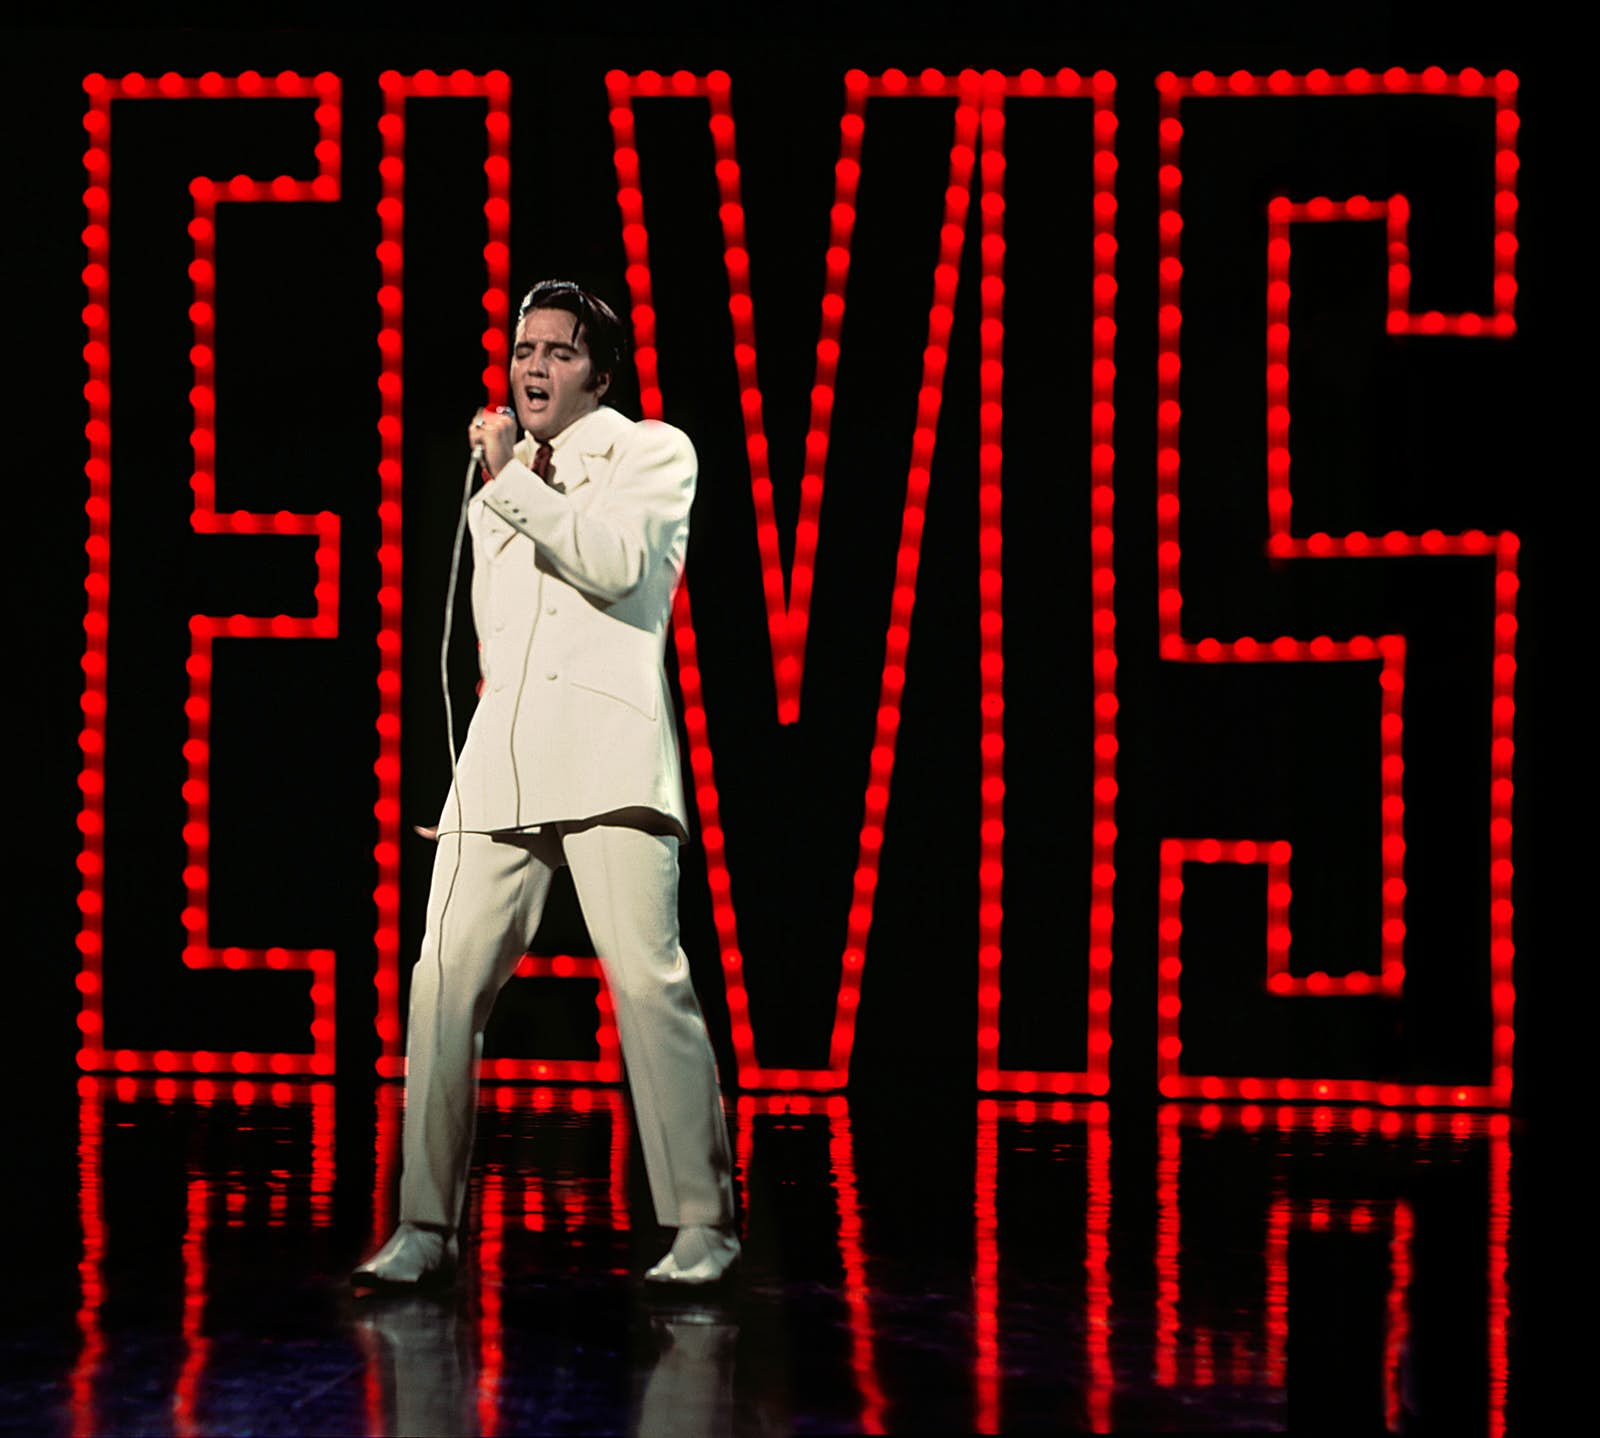 Elvis Presley in a white suit on stage, in front of a series of red lights that spell ELVIS